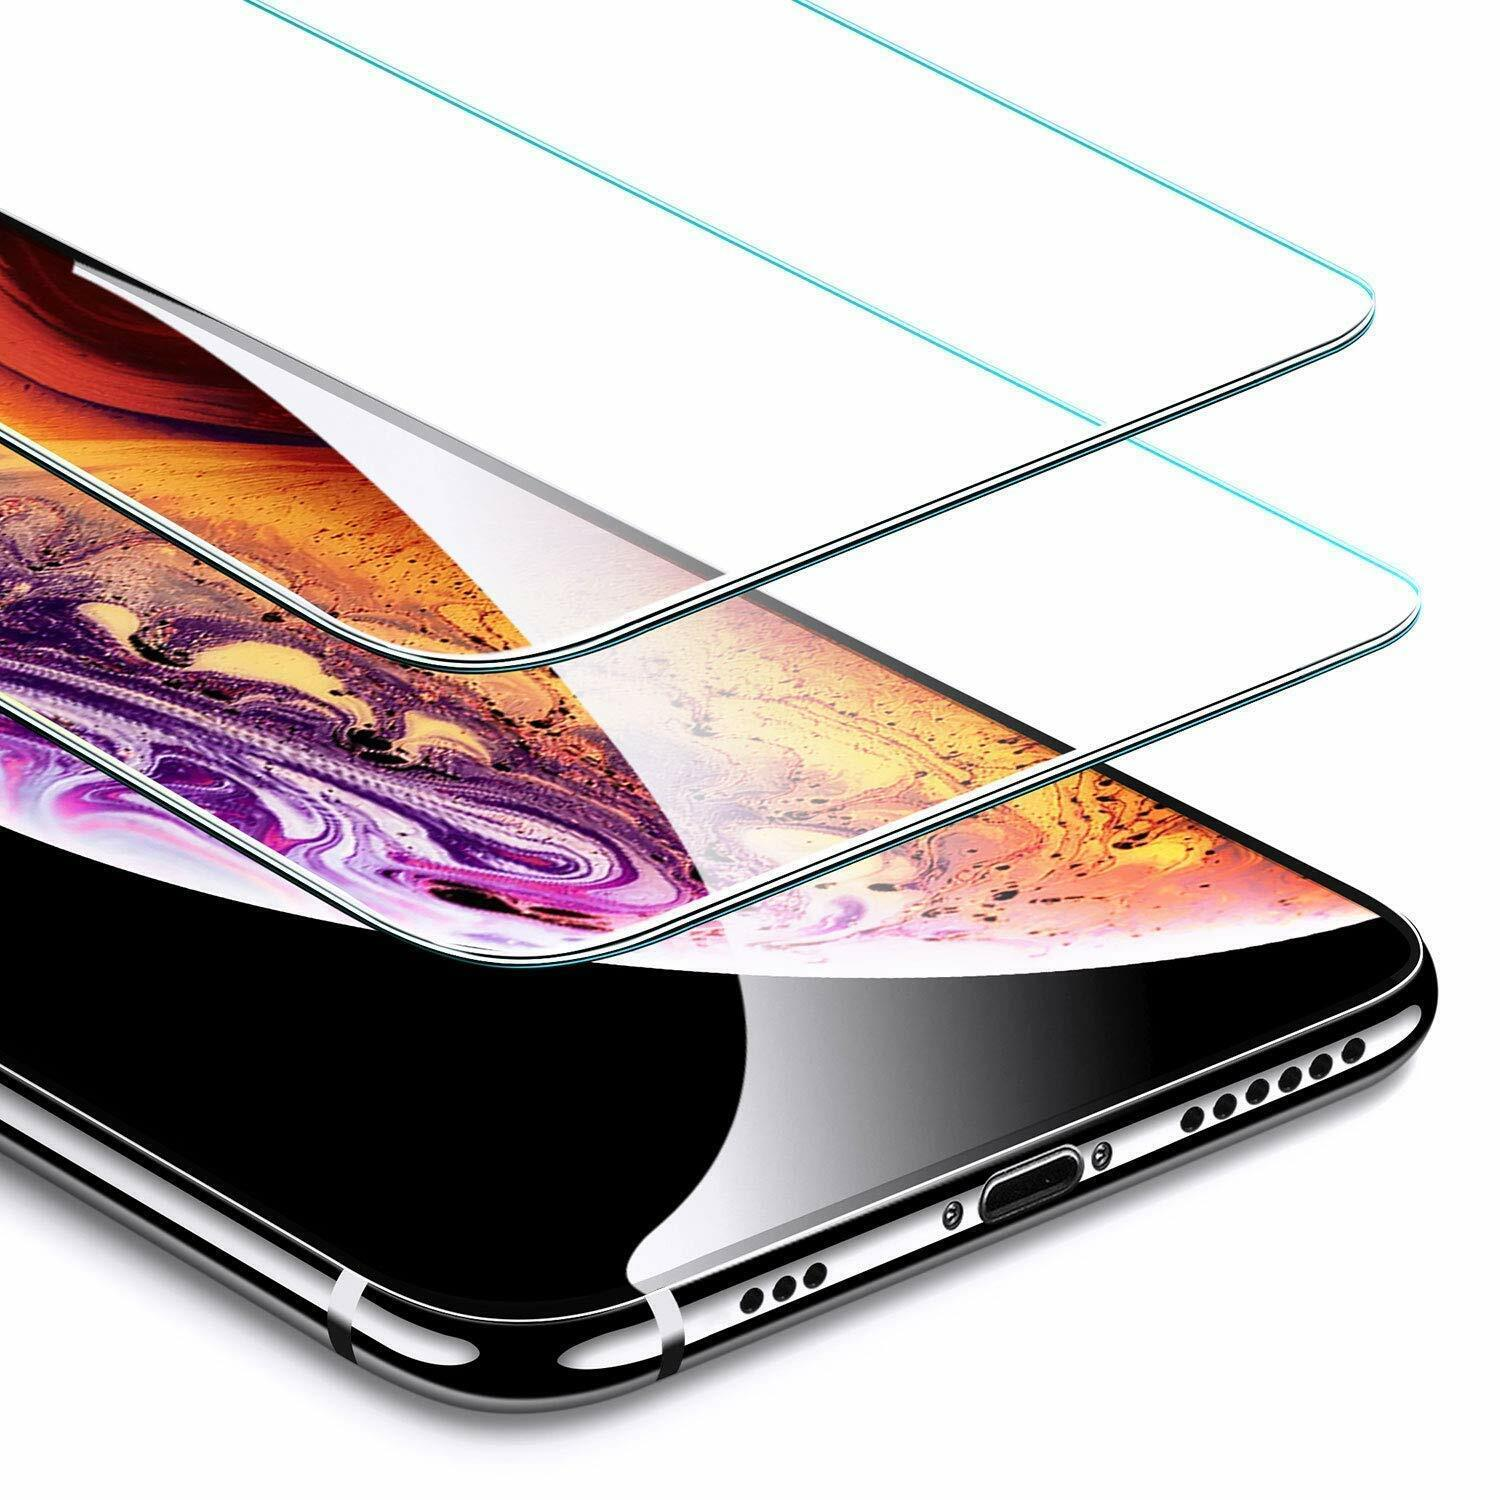 2X Tempered Glass Screen Protector for iPhone 11 PROMAX (6.5″) Cell Phone Accessories